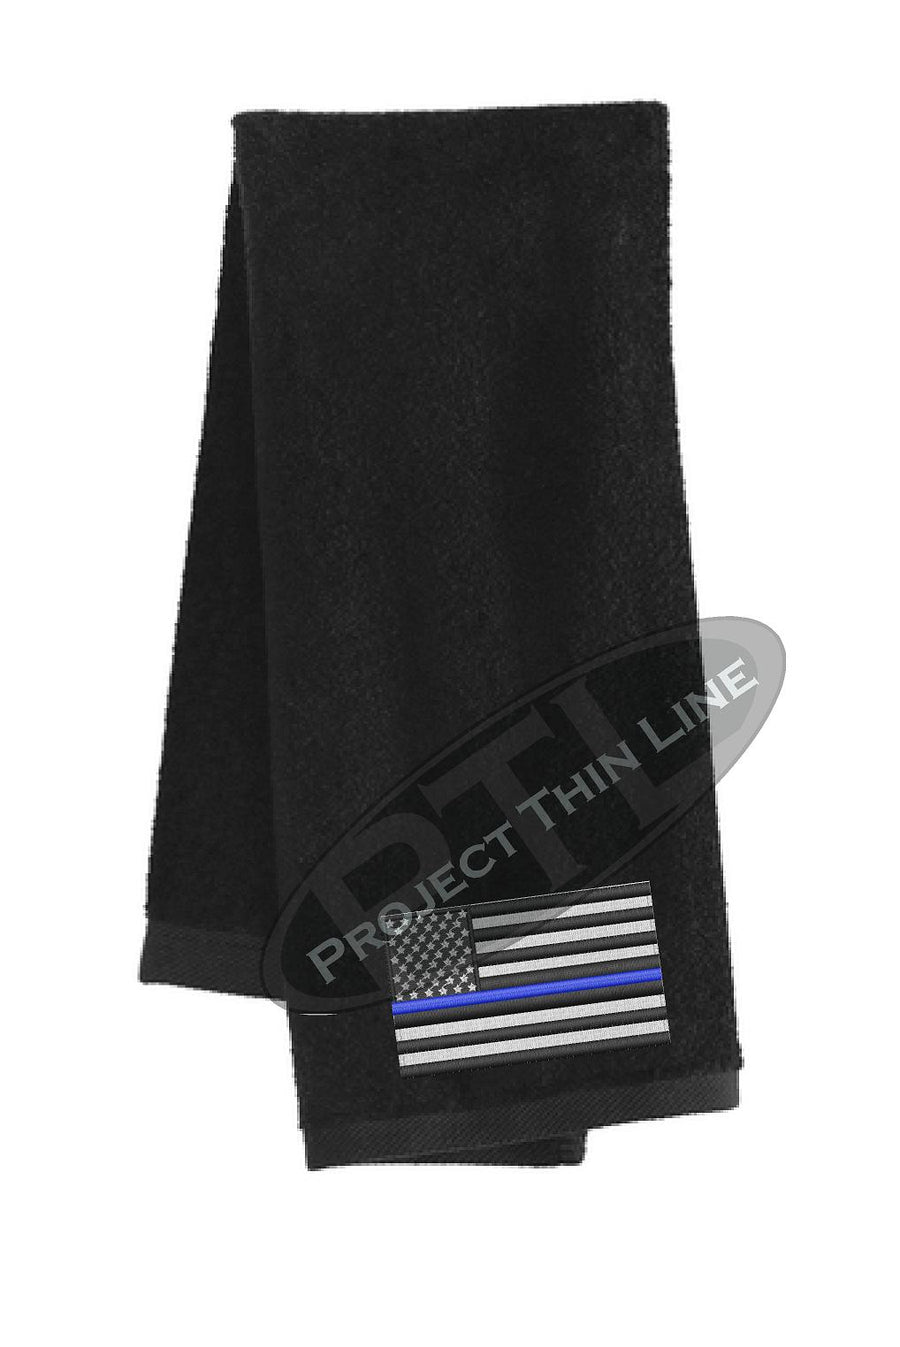 Thin BLUE Line Flag Workout Gym Towel